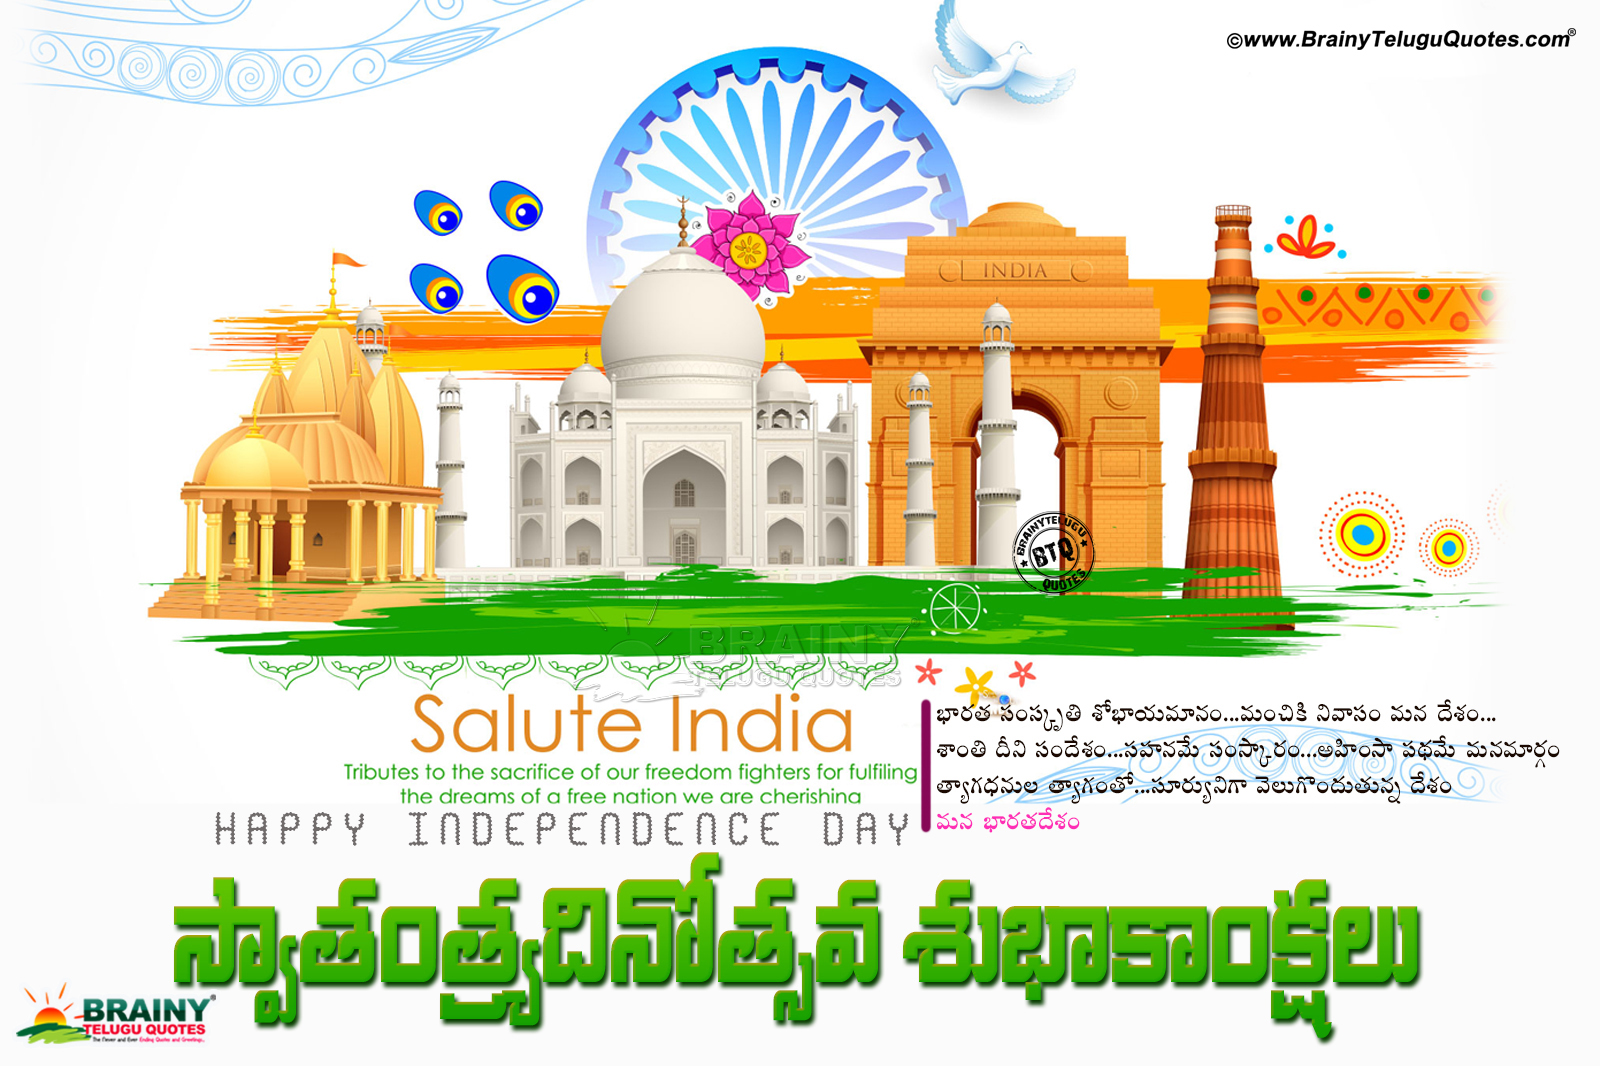 72nd Independence Day Greetings Hd Wallpapers In Telugu Free